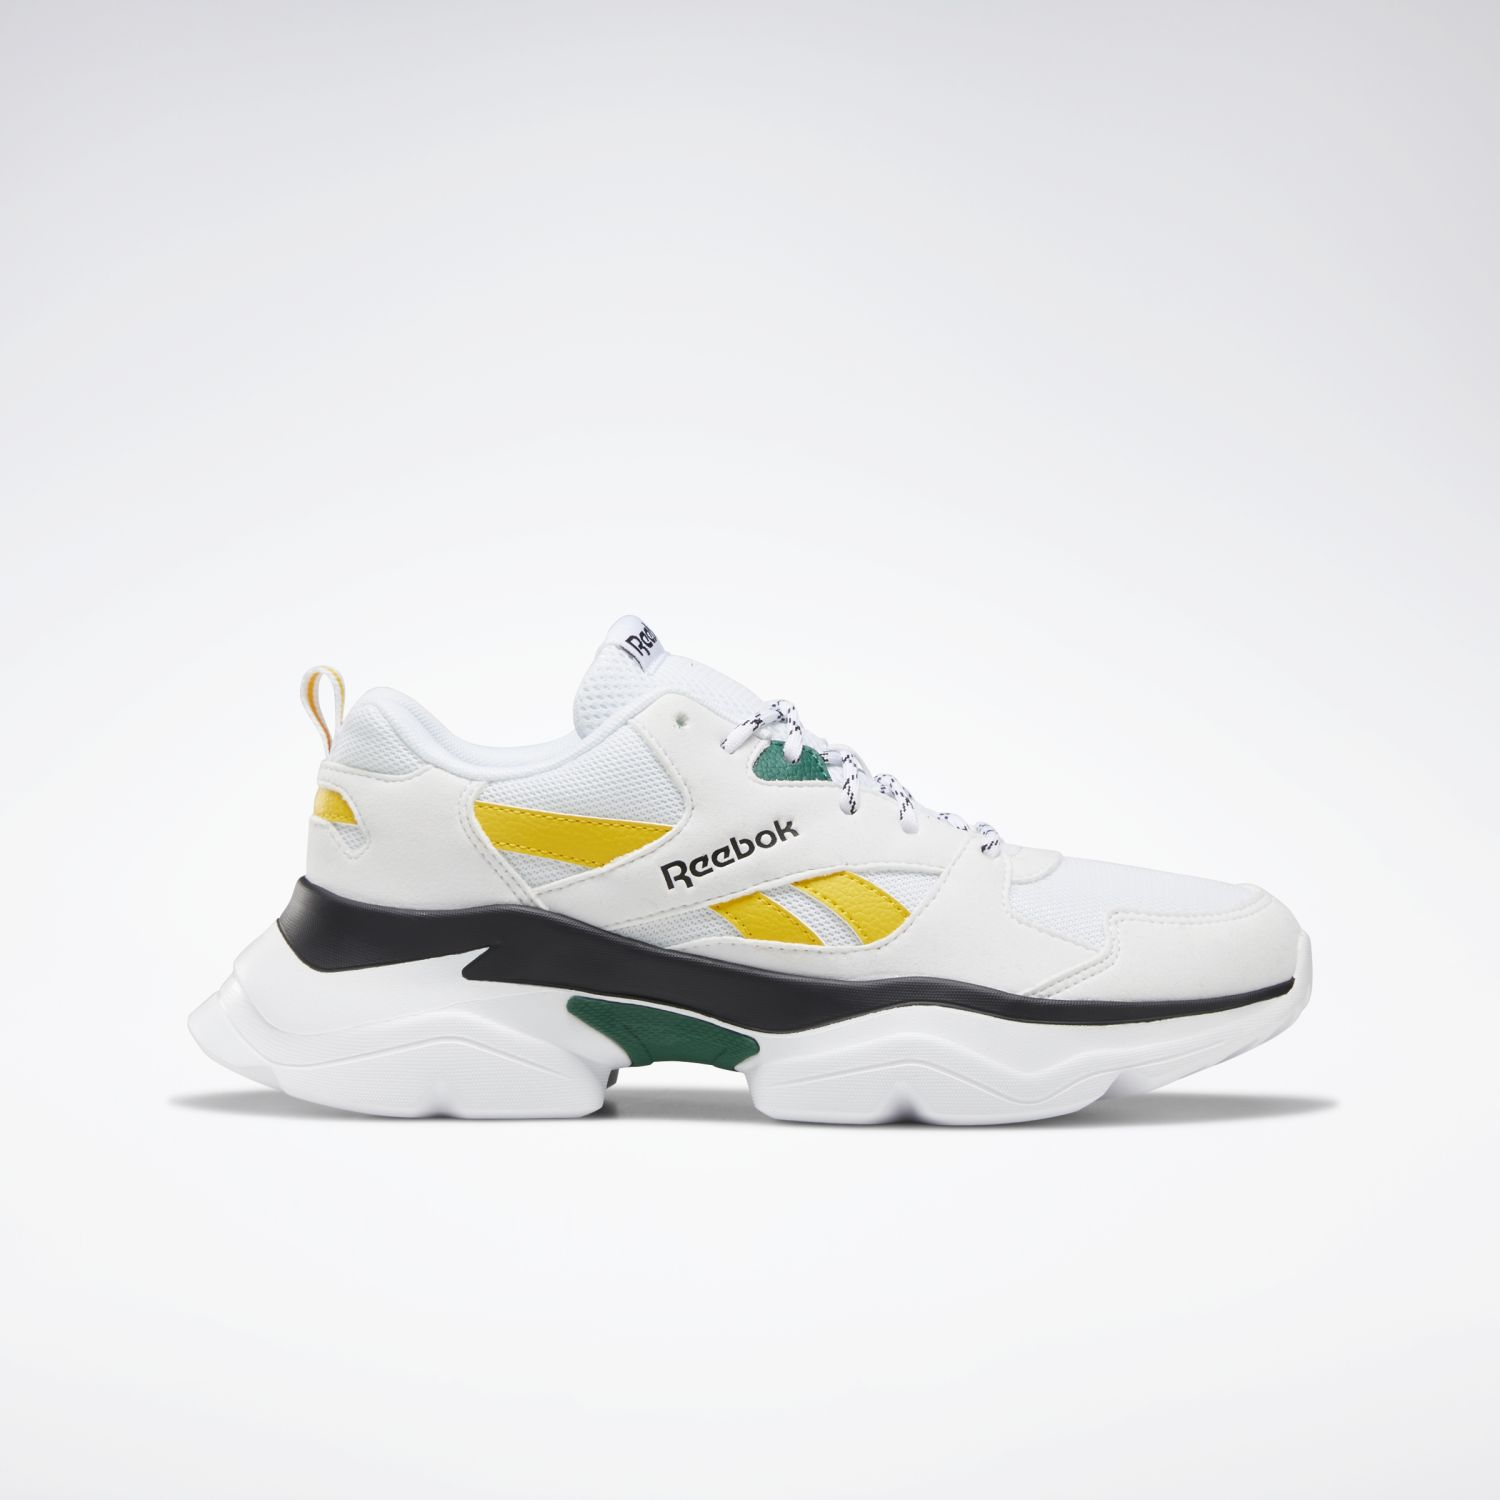 Reebok reebok royal bridge 3 Blanco / amarillo Running en pista